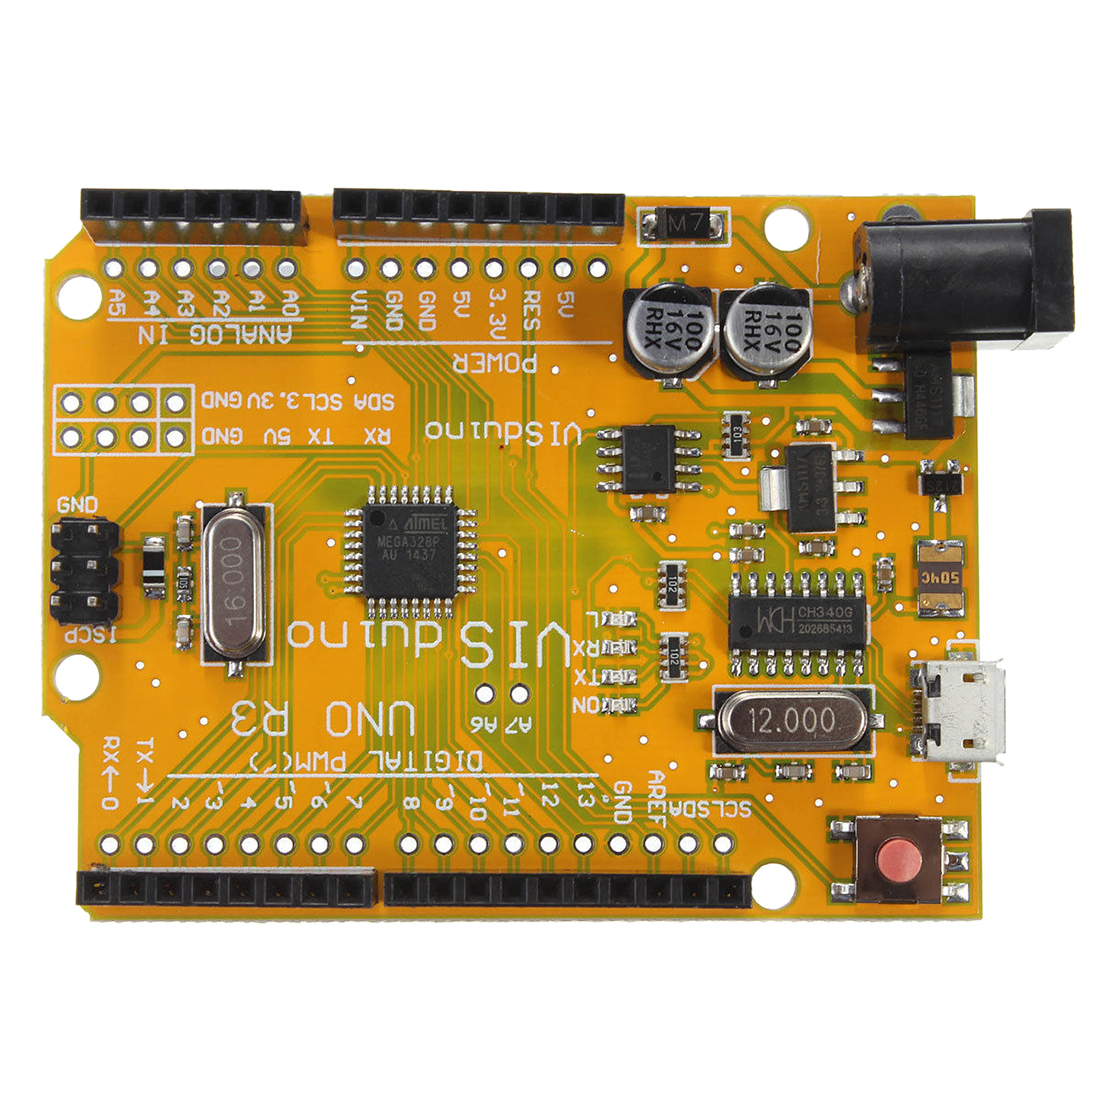 For Uno R3 Atmega328p Ch340 Micro Mini Usb Board Compatible Pcb Printed Circuit 7x9 Cm Prototype Led Diy Project Ebay Plug Development The Driver Will Automatically Install Select Inside Die Com Port This Can Be A Query In My